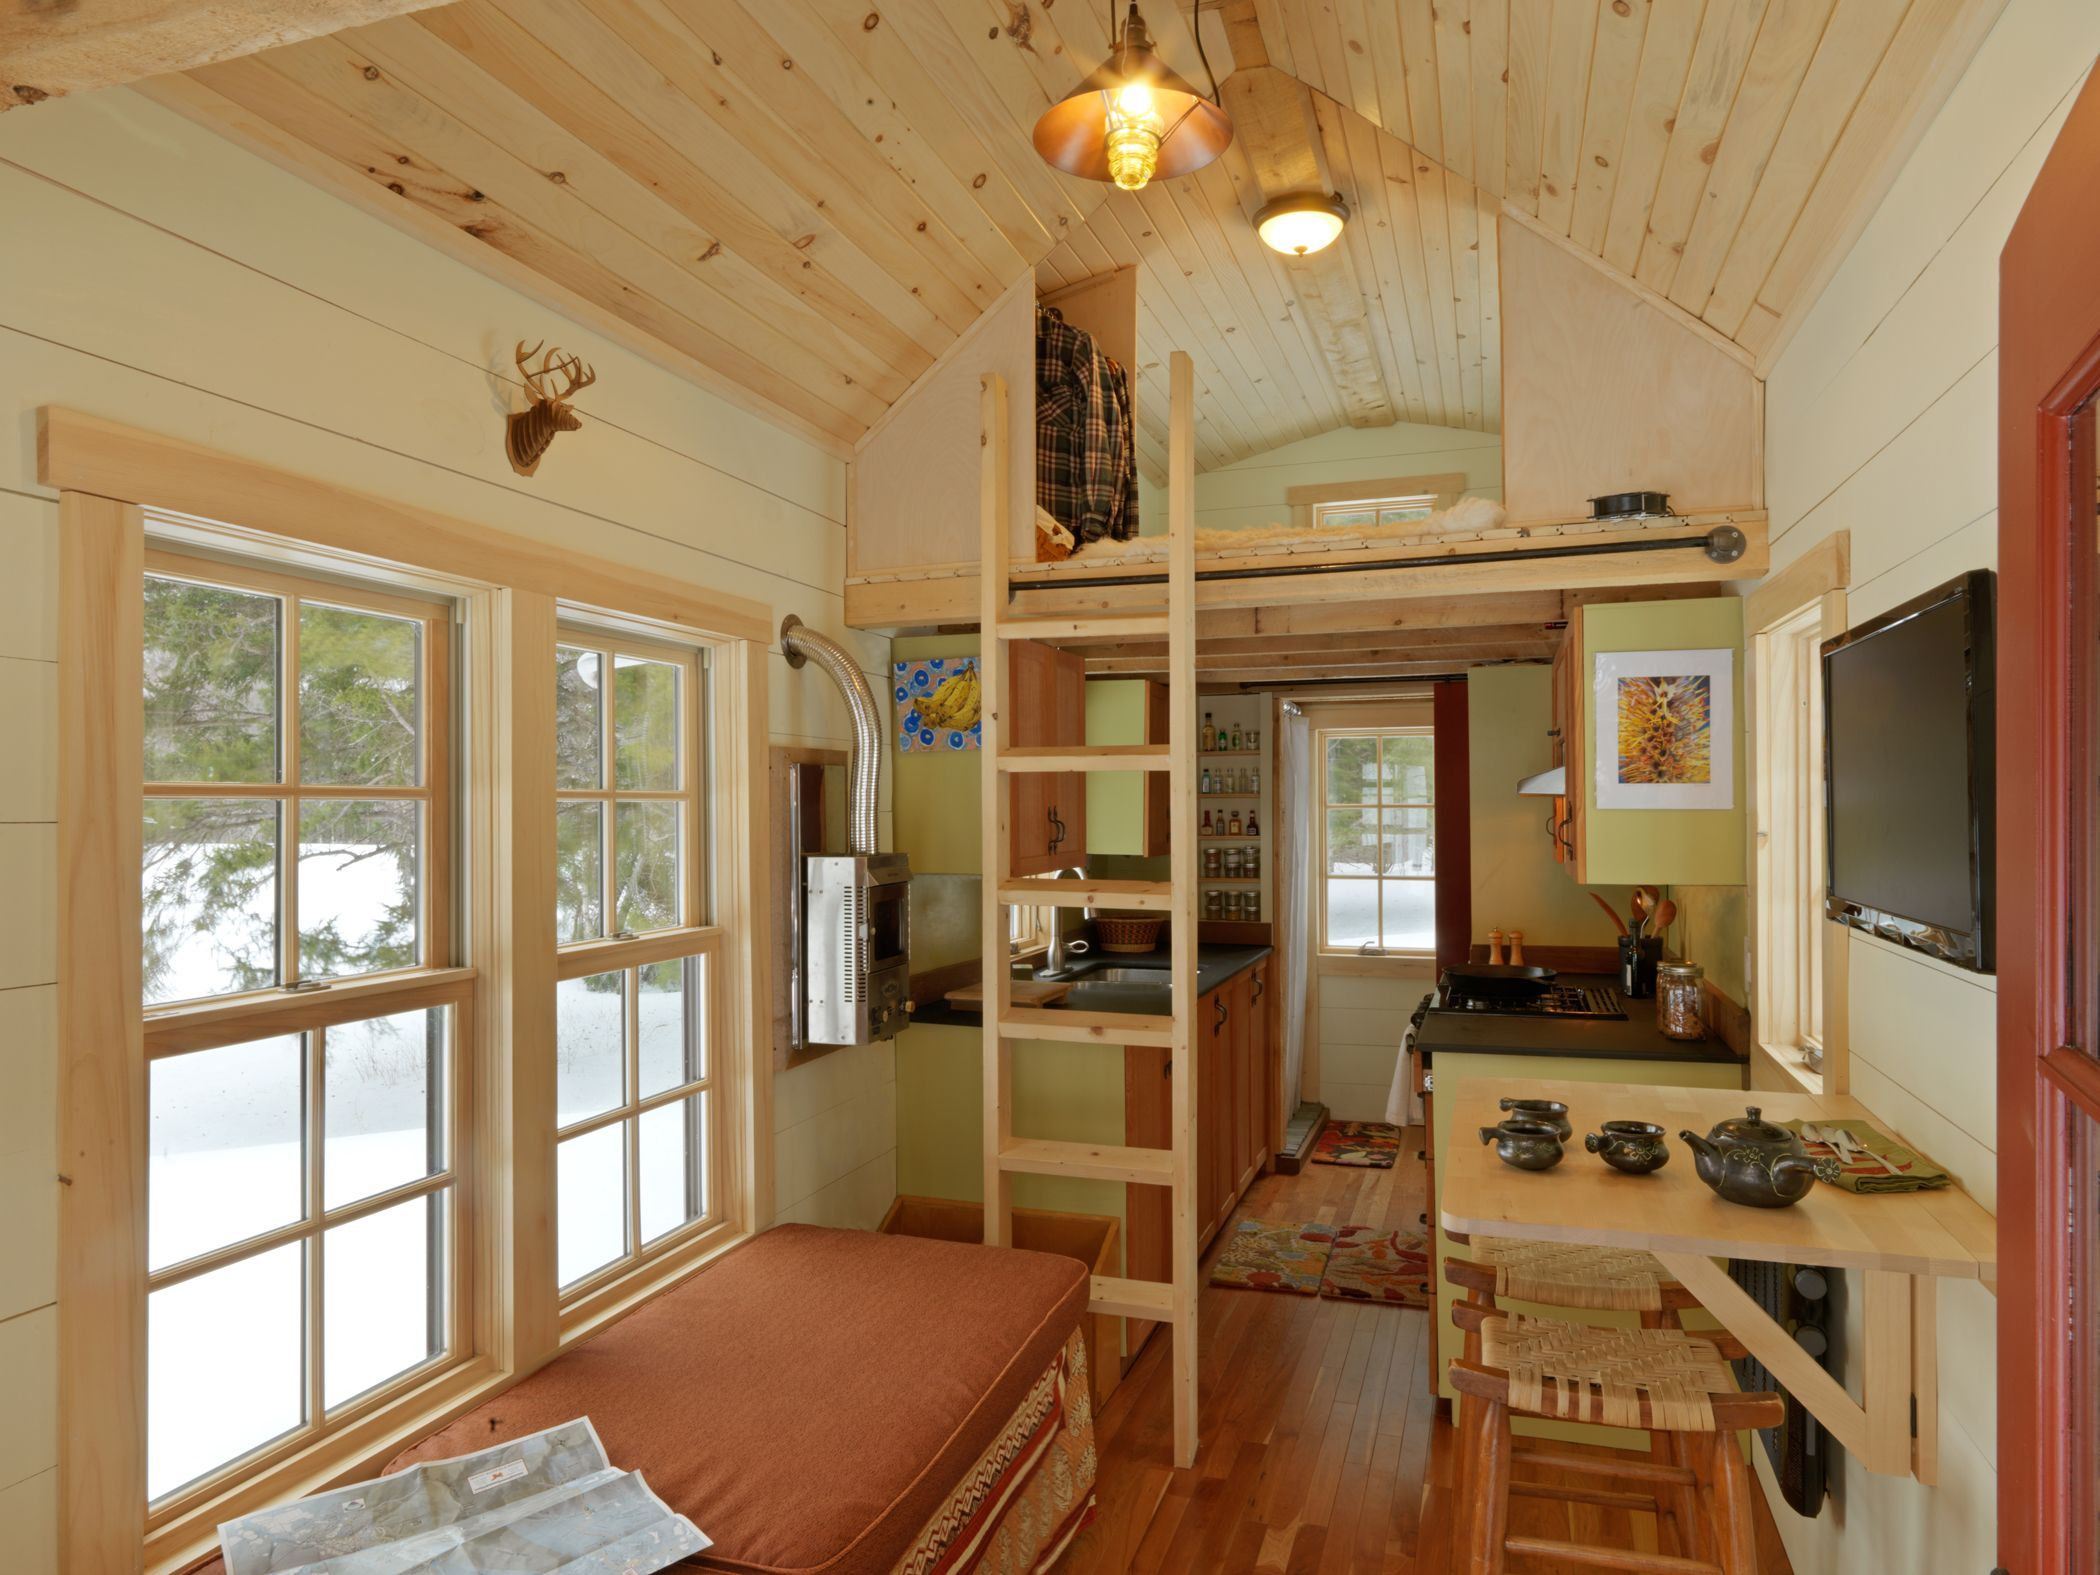 Tiny House Interior ethan waldman's tiny house includes everything he needs in a